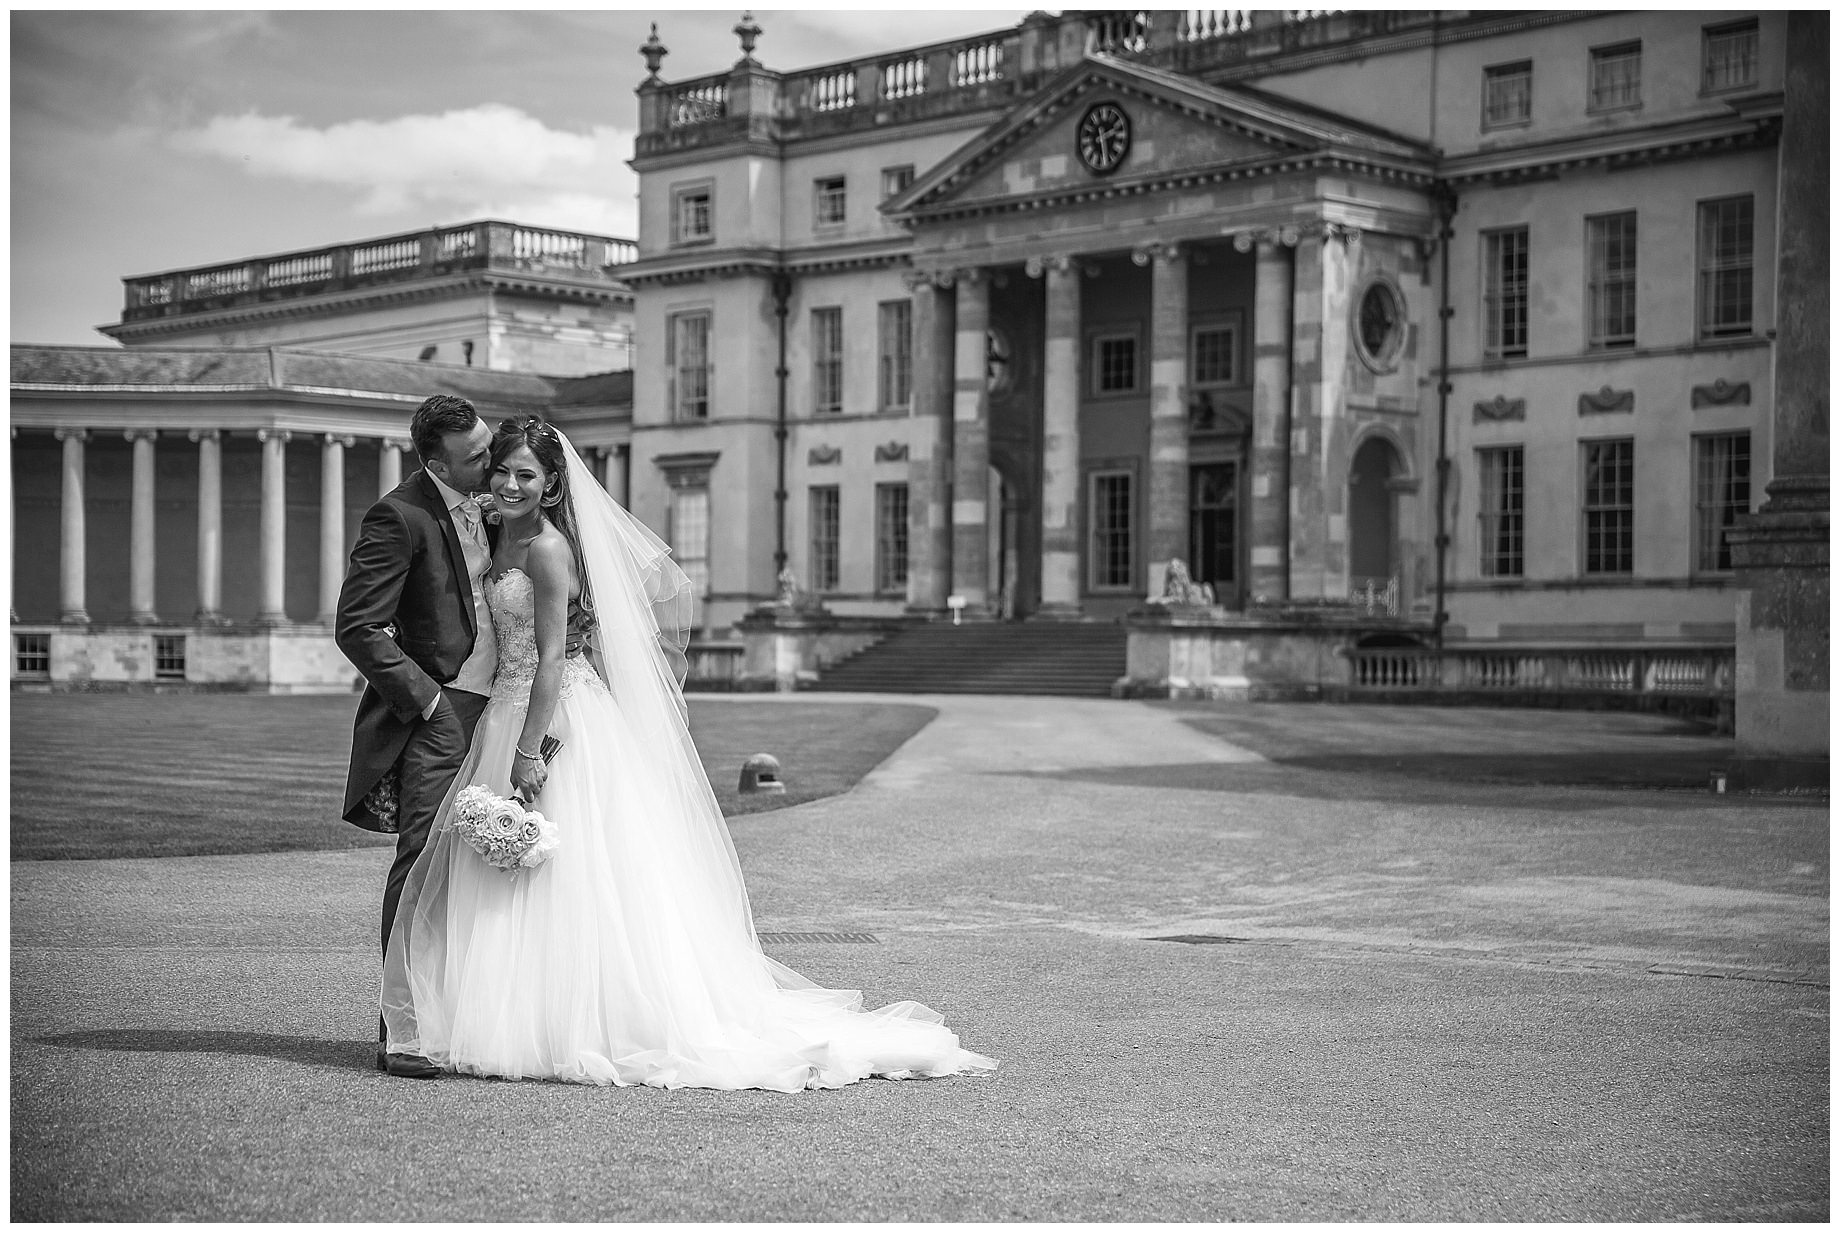 Stowe House Wedding Photography in black and white